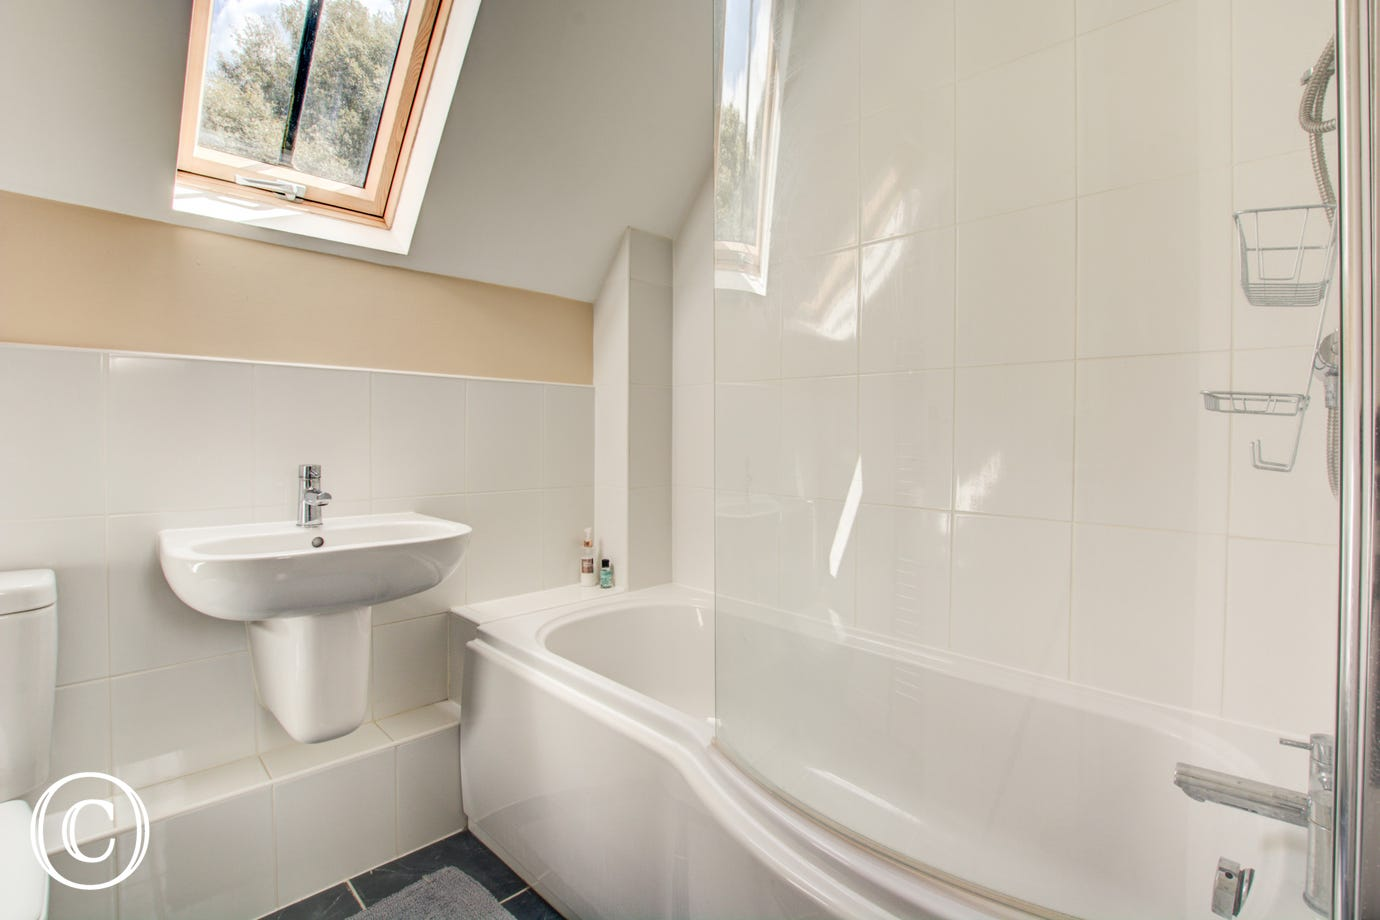 White bathroom suite with a bath, hand held shower, WC and wash hand basin